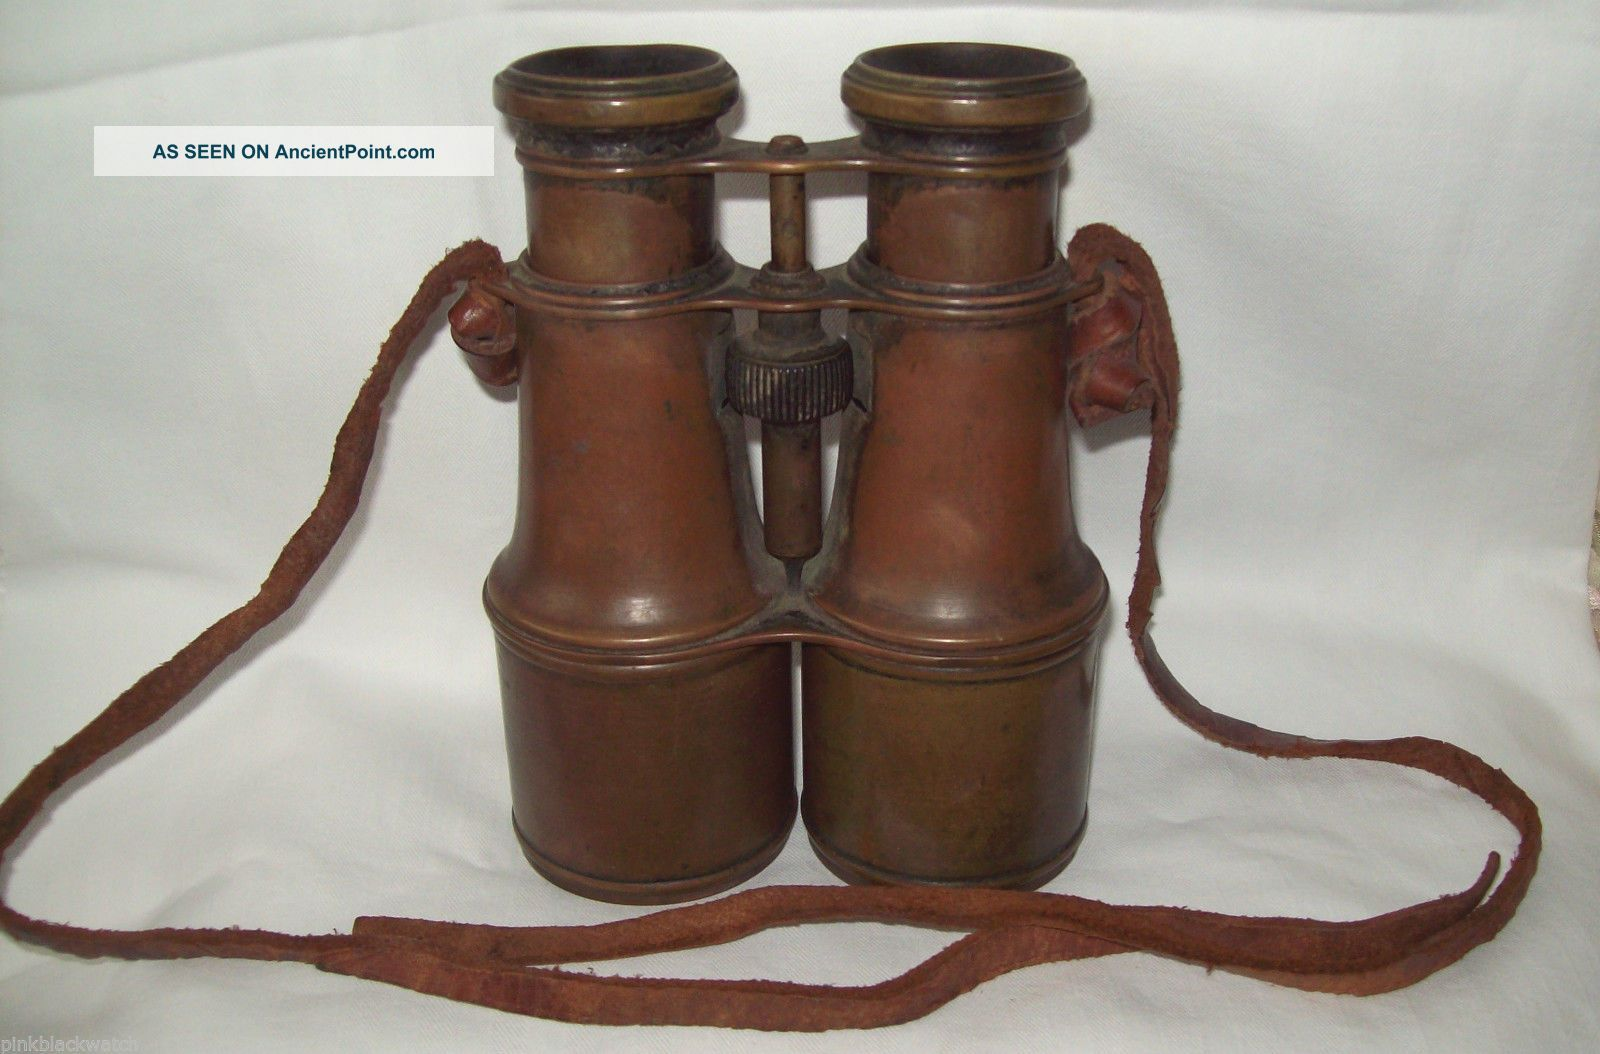 Vintage Brass Binoculars - 1930 Era - Uncleaned Not Branded Great To Restore Other photo